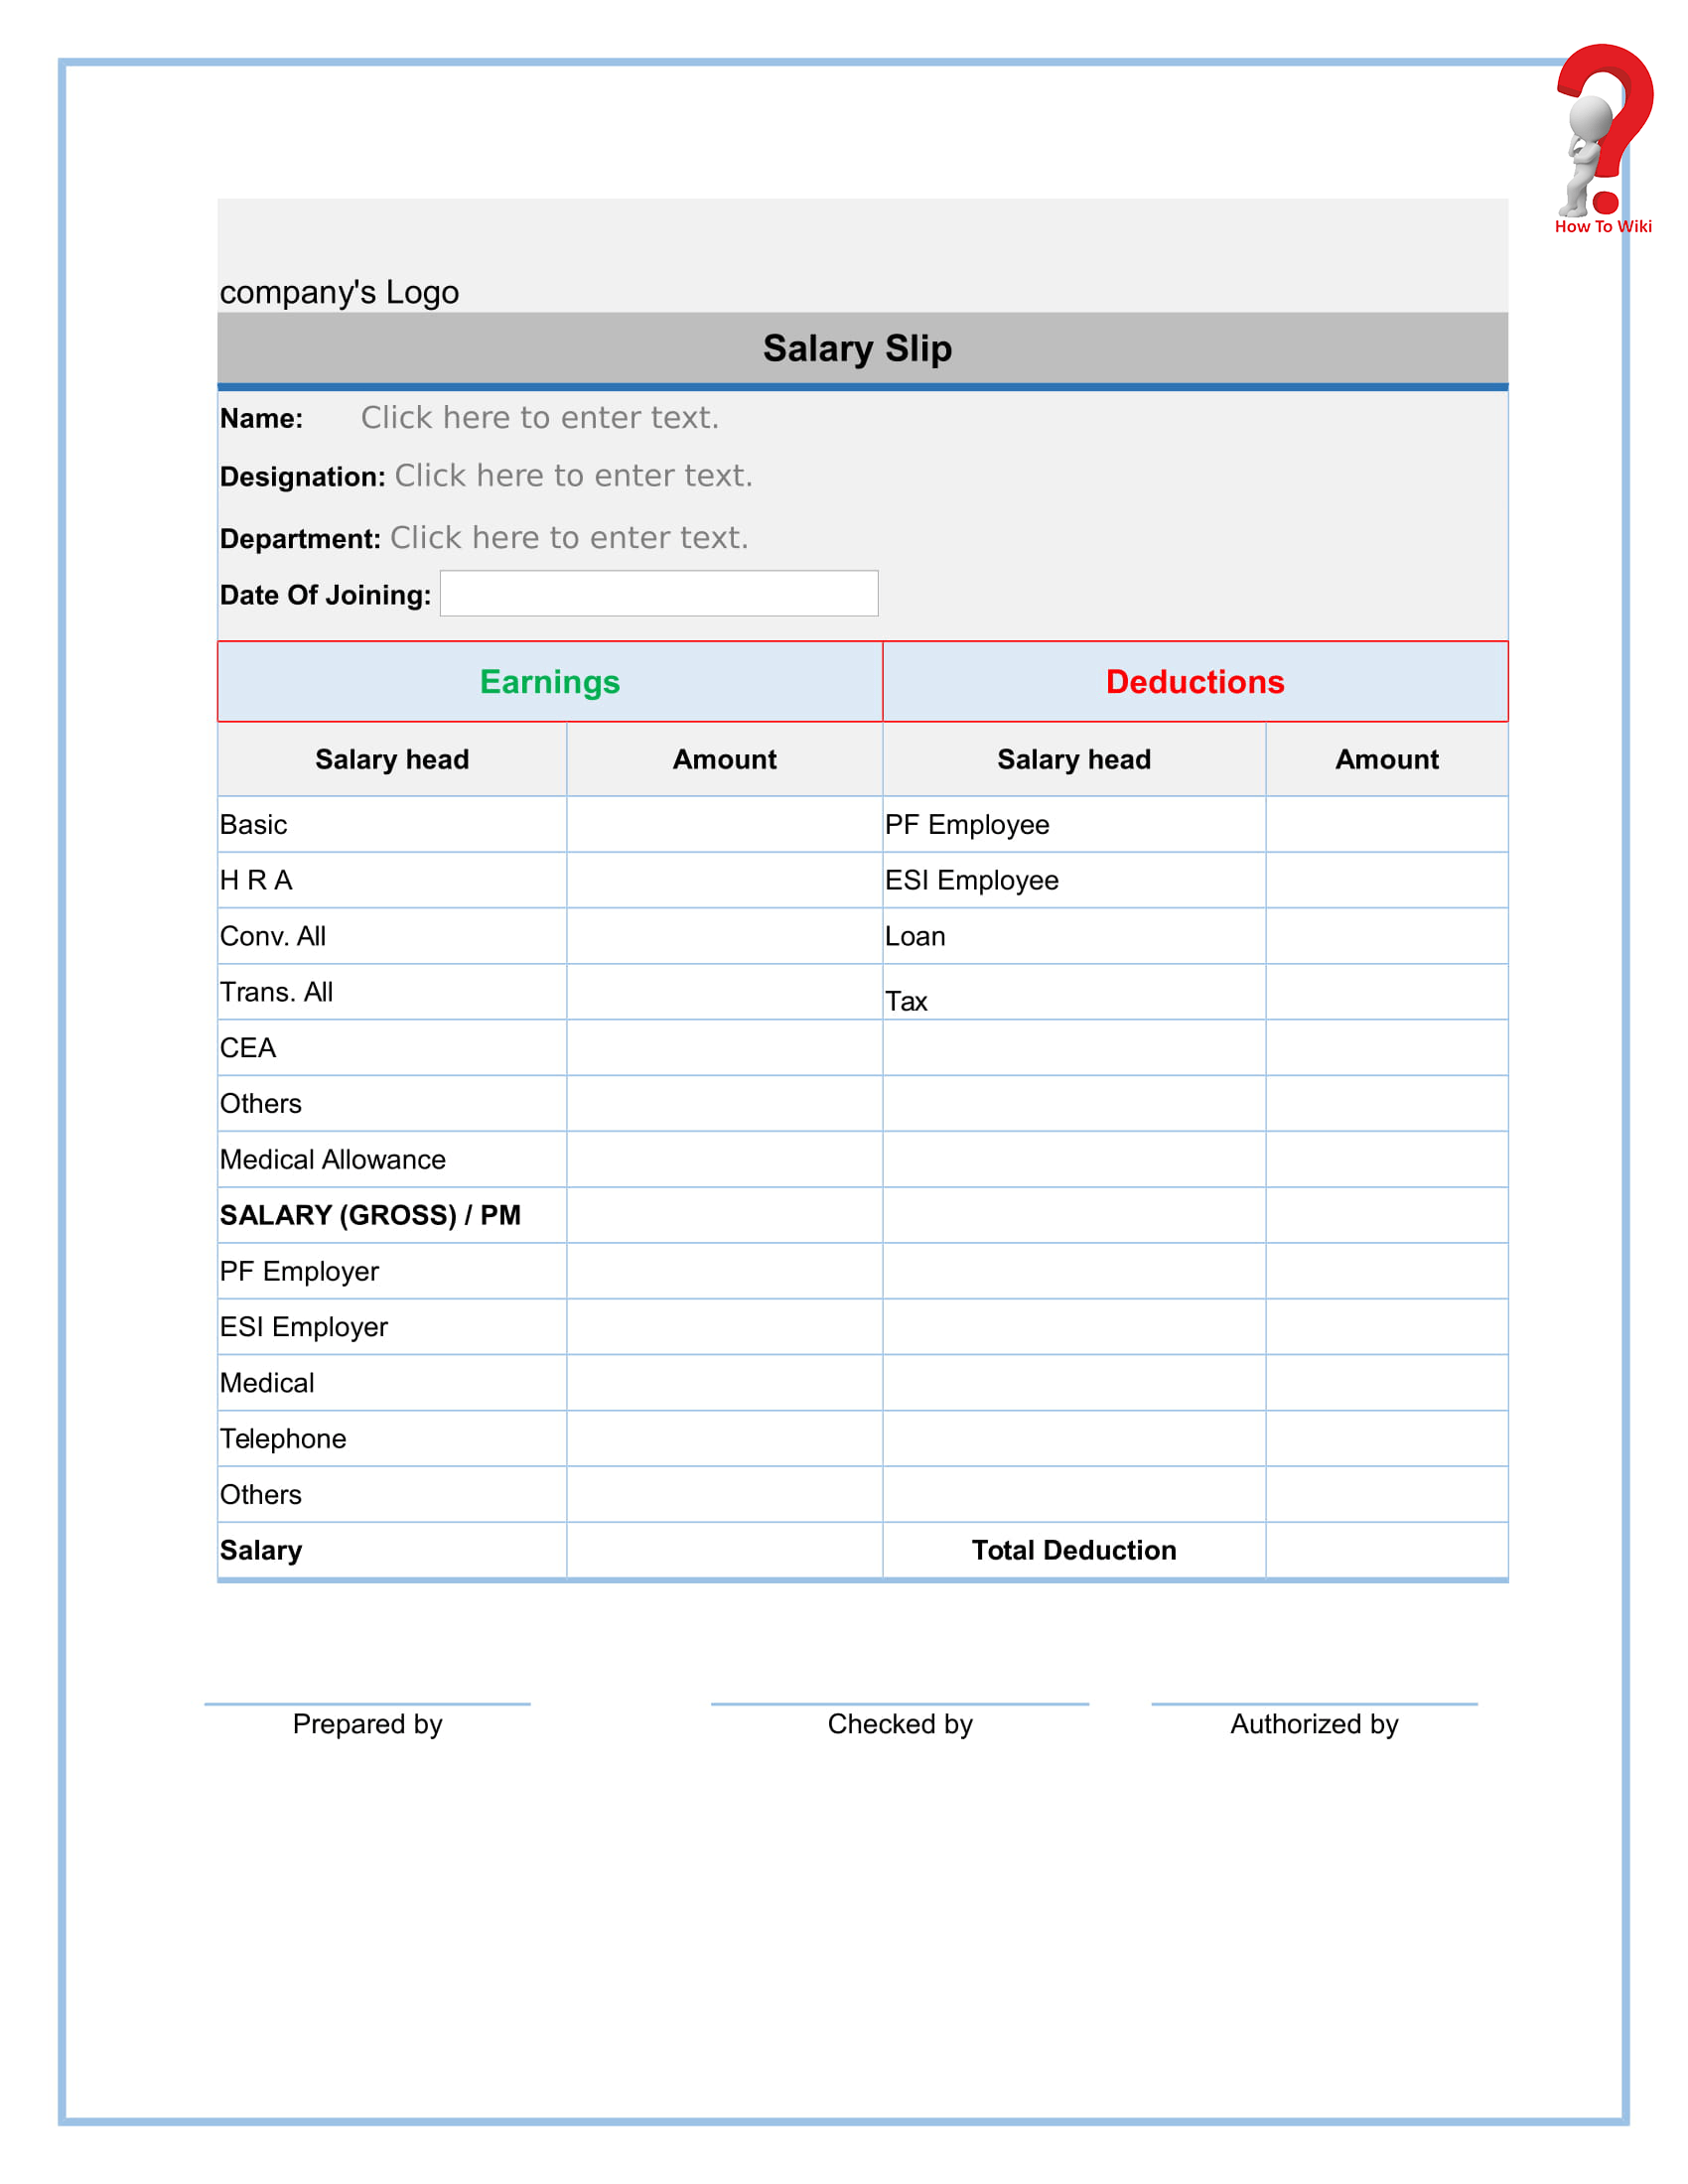 Free-Blank-Payslip-Template-1 | How to Wiki